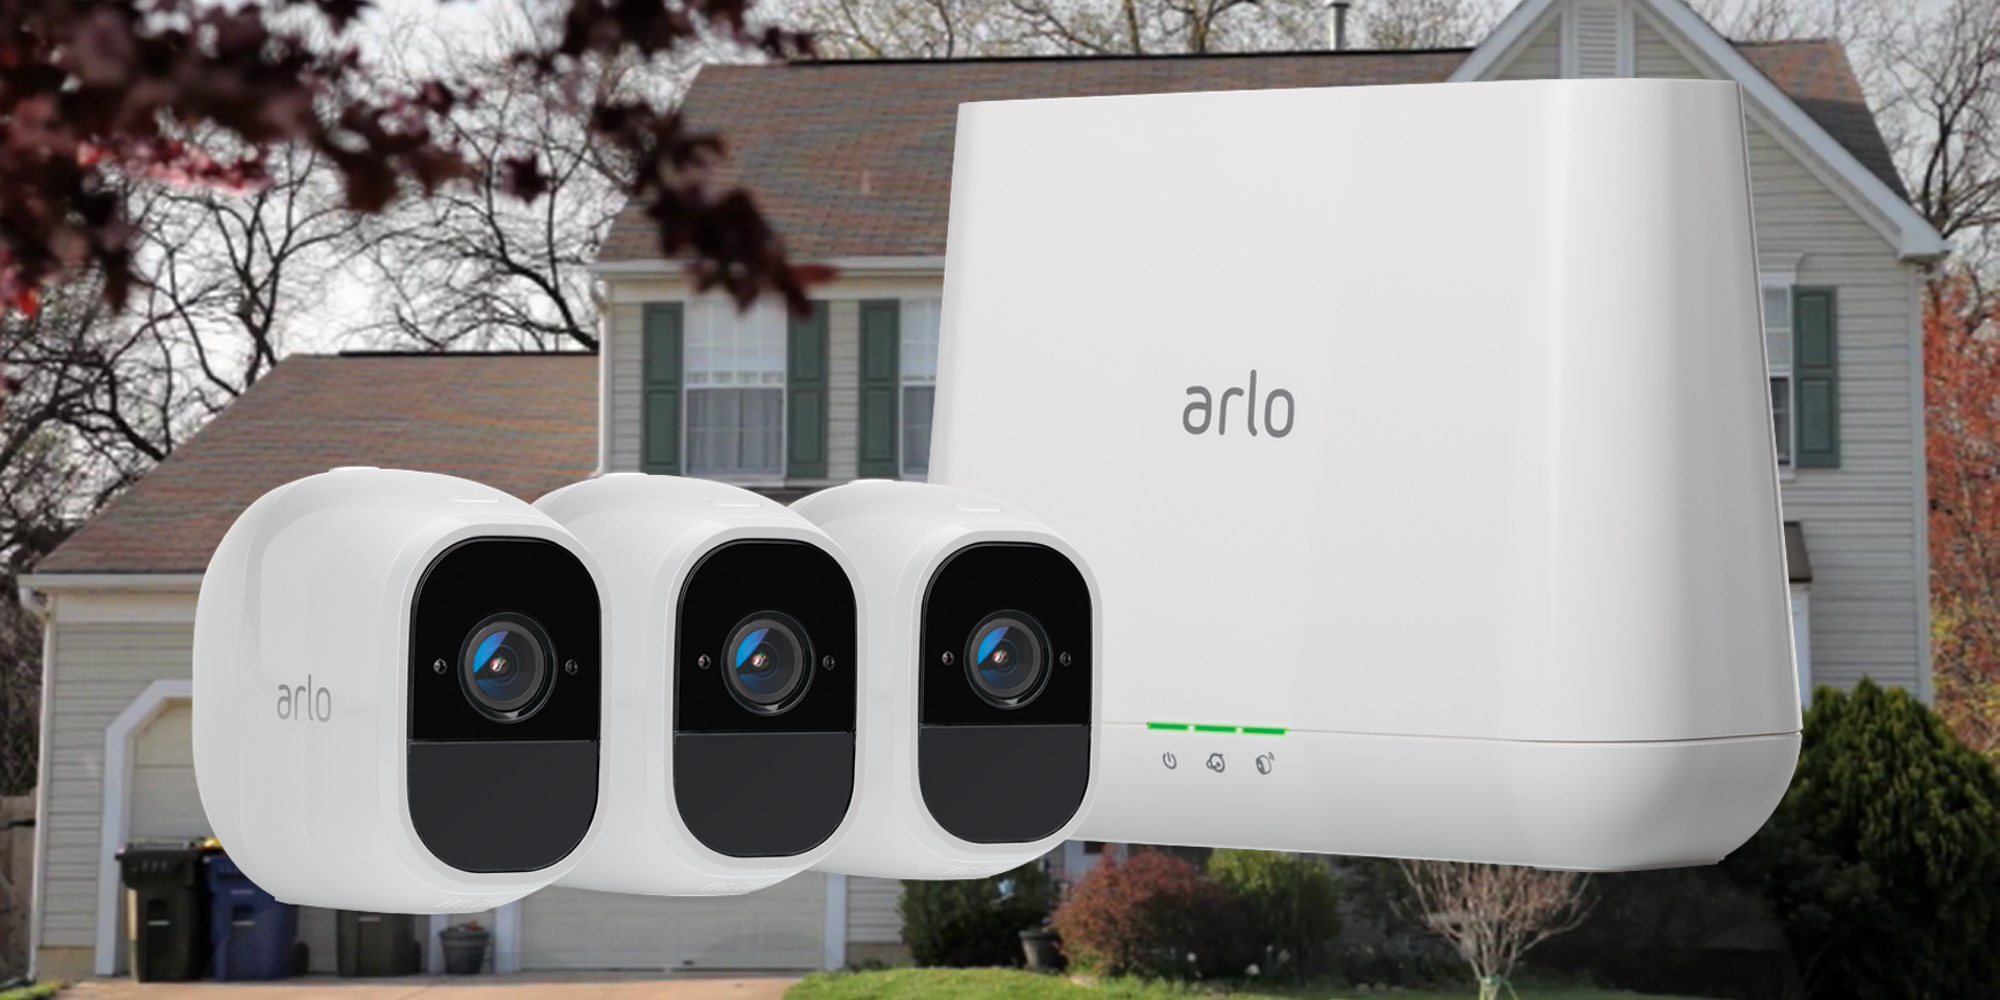 Arlo's $450 Pro 2 Camera System brings home 1080p recording, 7-day Cloud DVR, more (20% off)